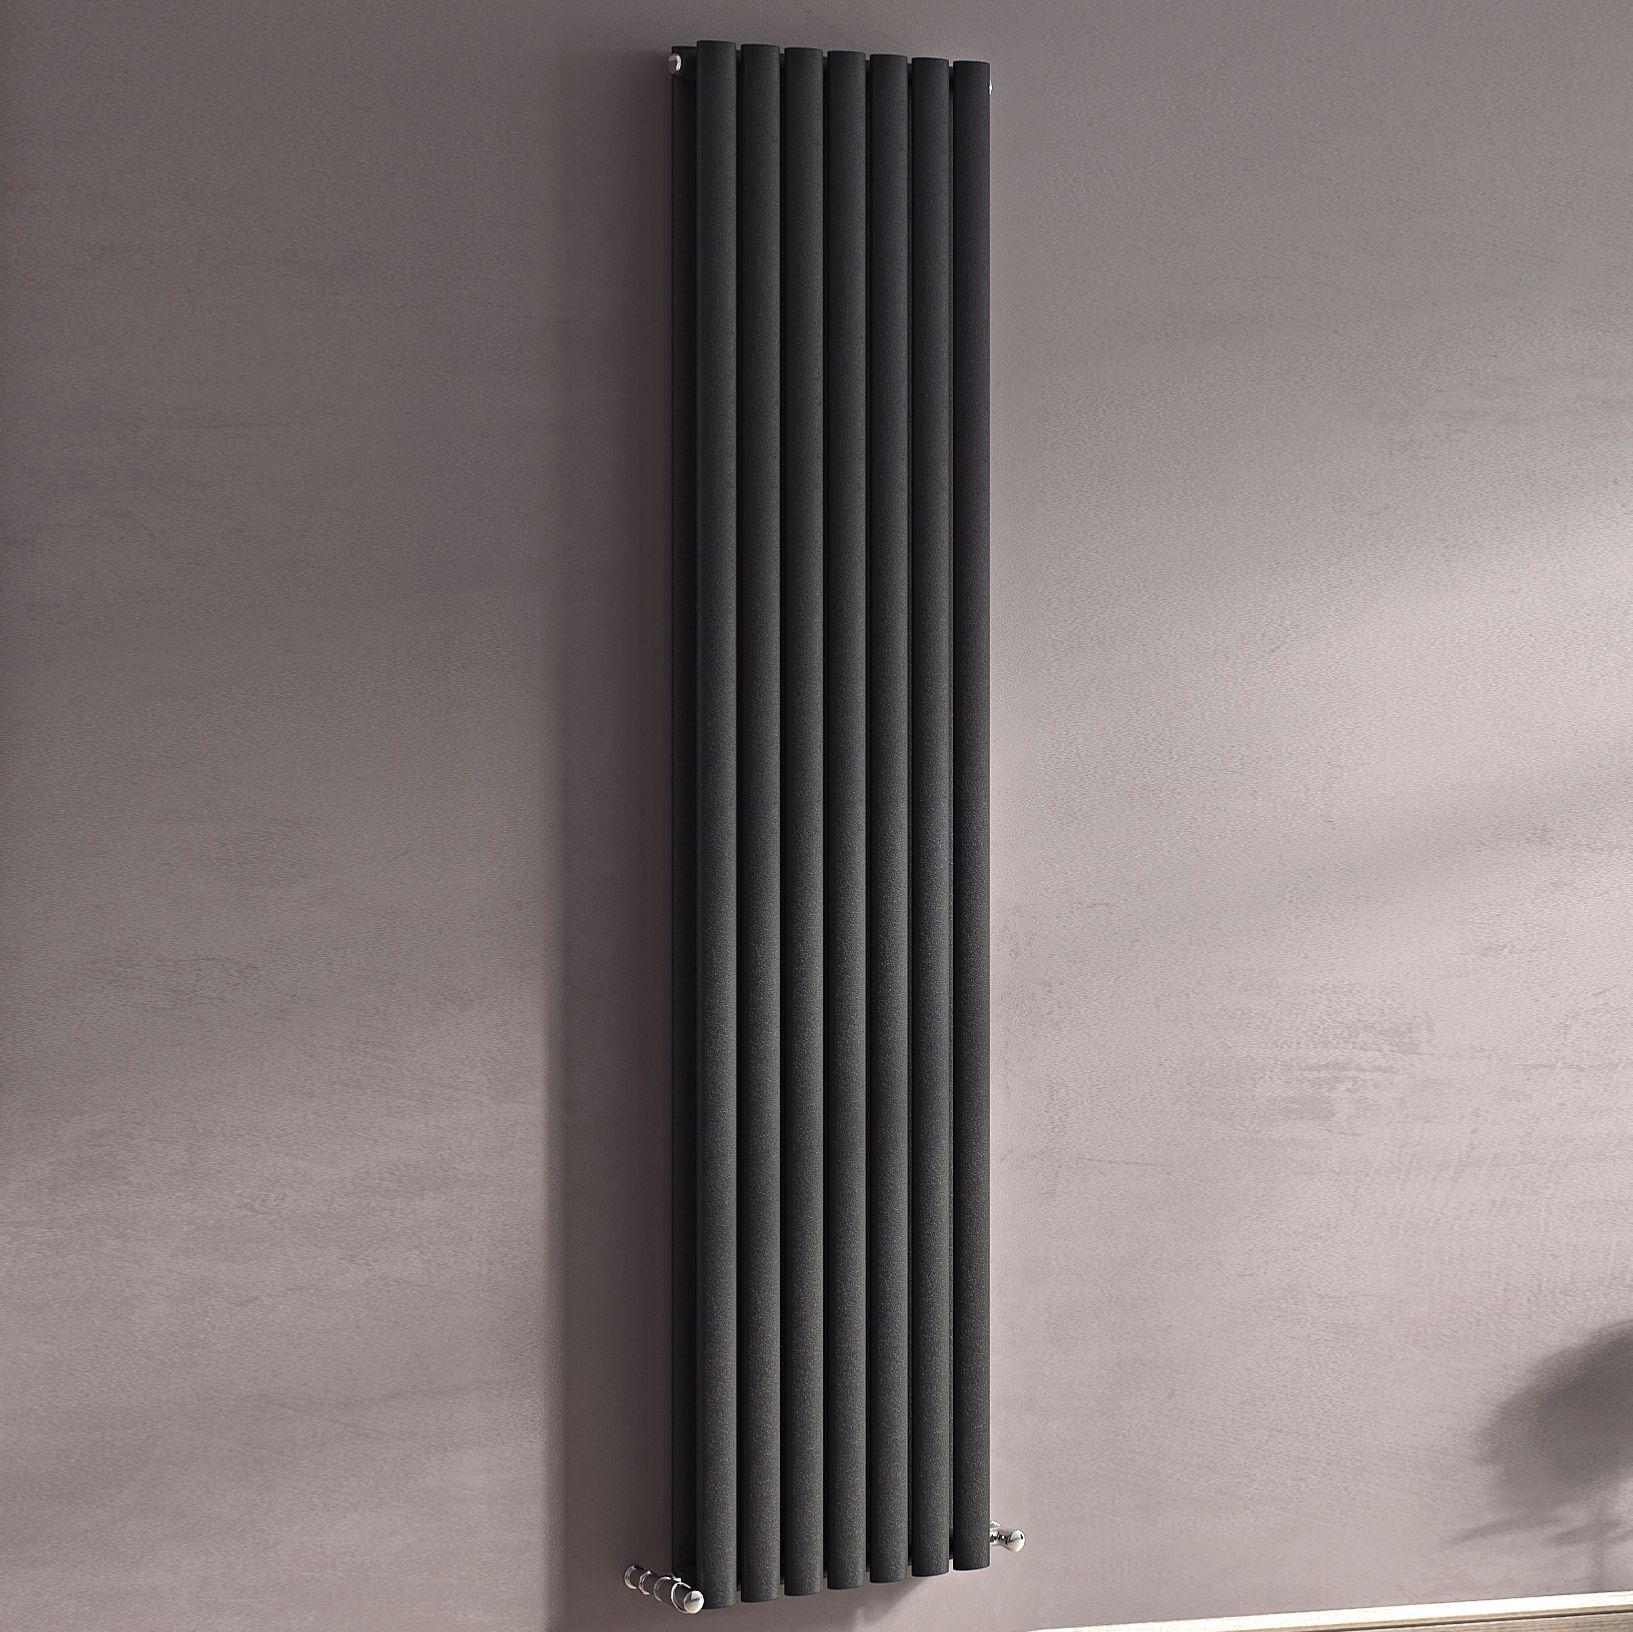 Ximax Champion Vertical Radiator Anthracite (H)1800 mm (W)410